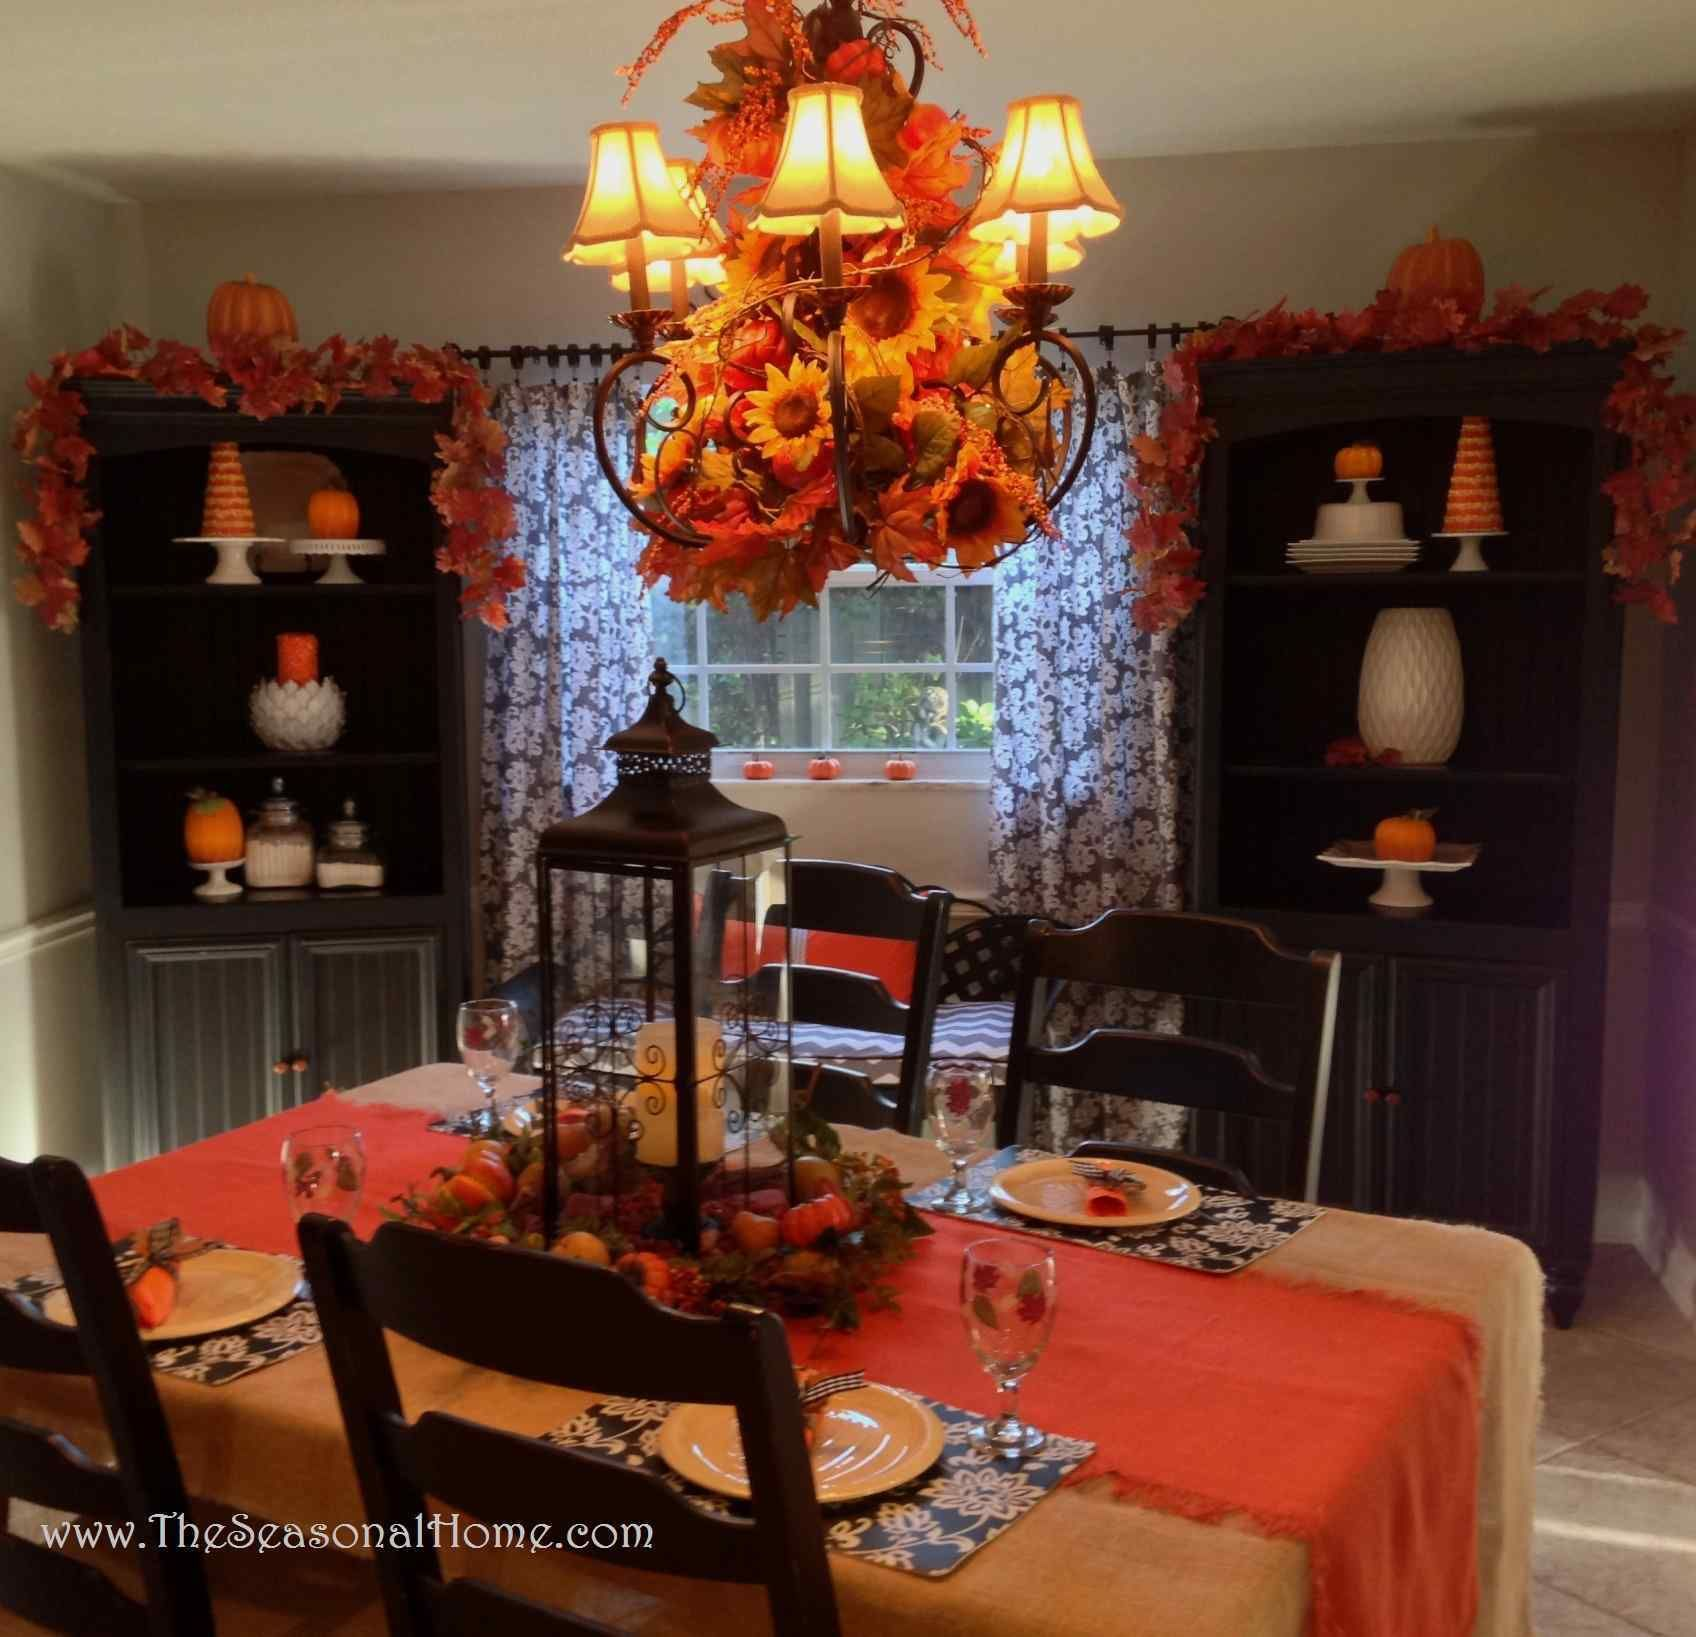 Cheap Home Decorating Stores: Cool Fall Tree Decorations 15 From Home Decor Ideas For